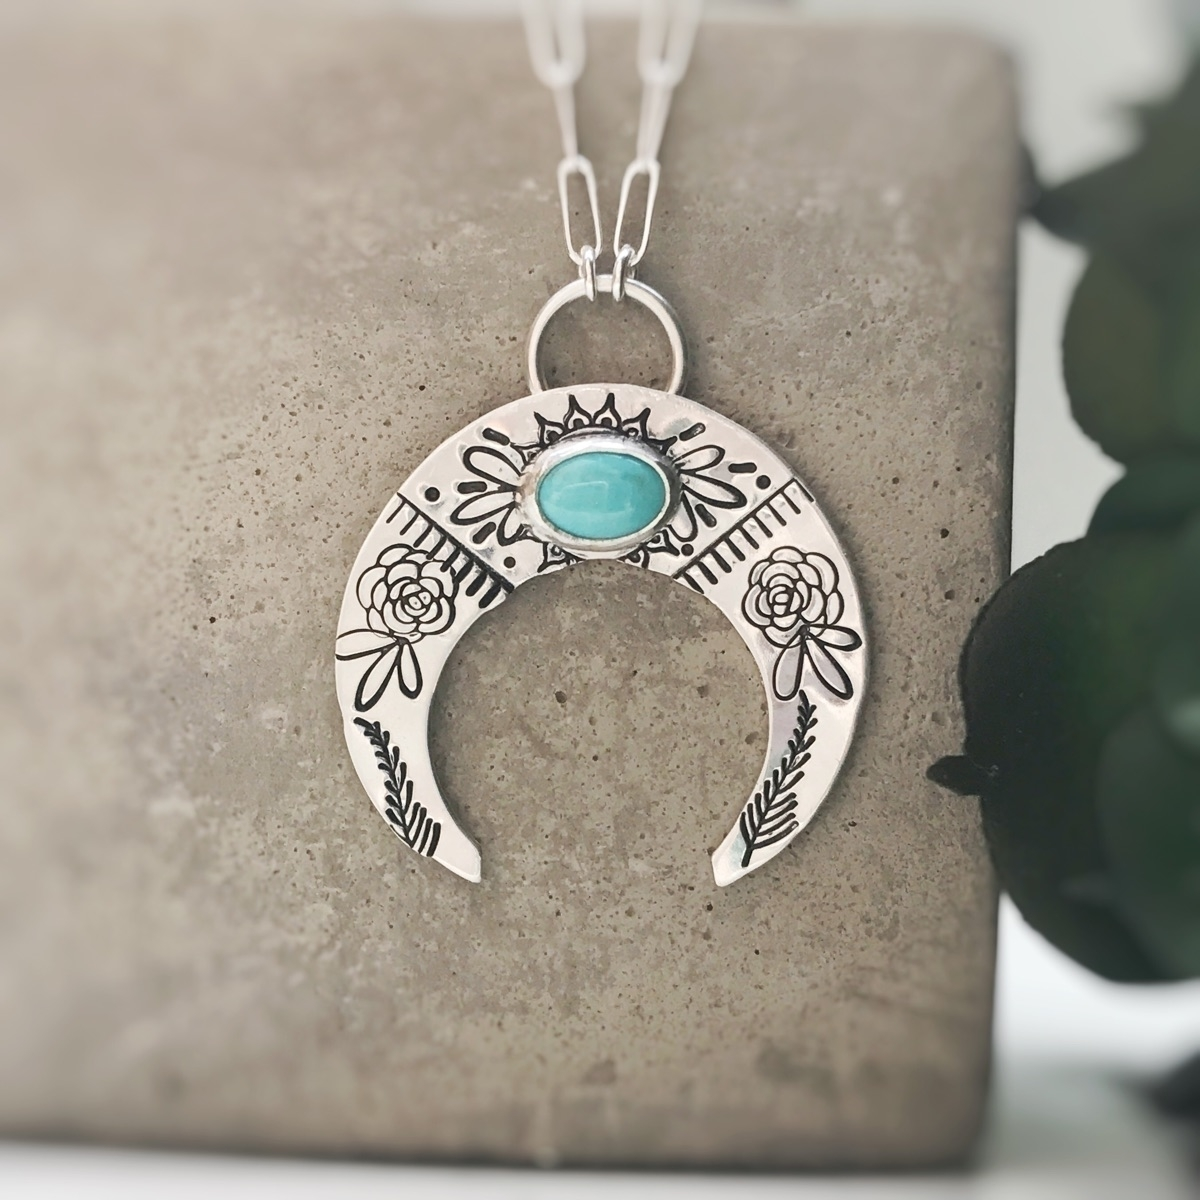 Sterling silver crescent perfec - rivervalleydesigns | ello